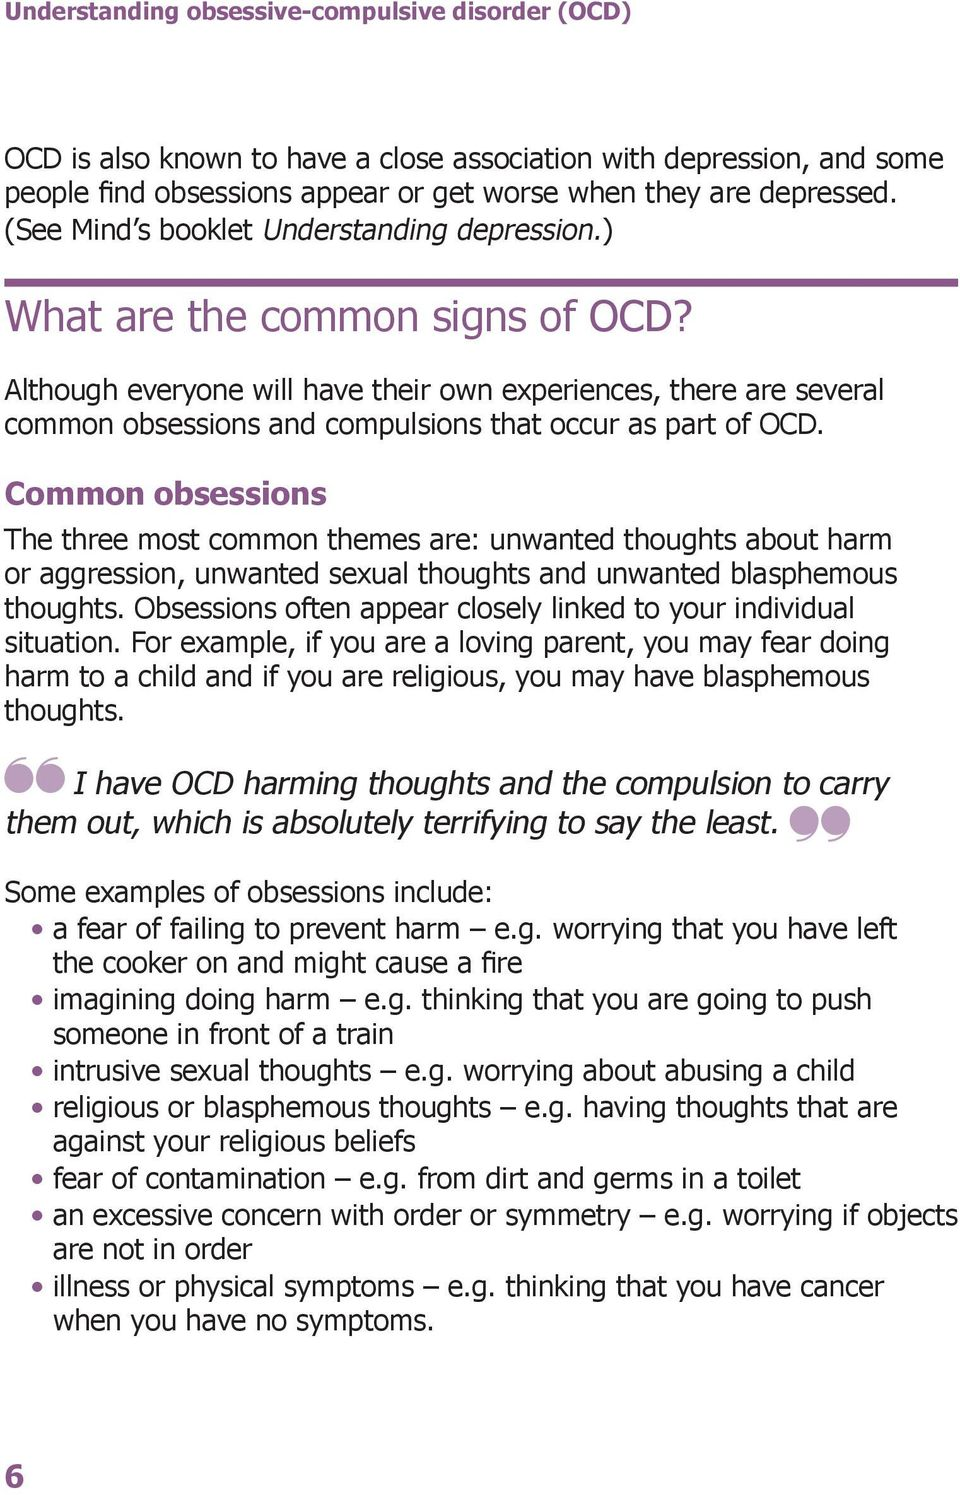 Although everyone will have their own experiences, there are several common obsessions and compulsions that occur as part of OCD.